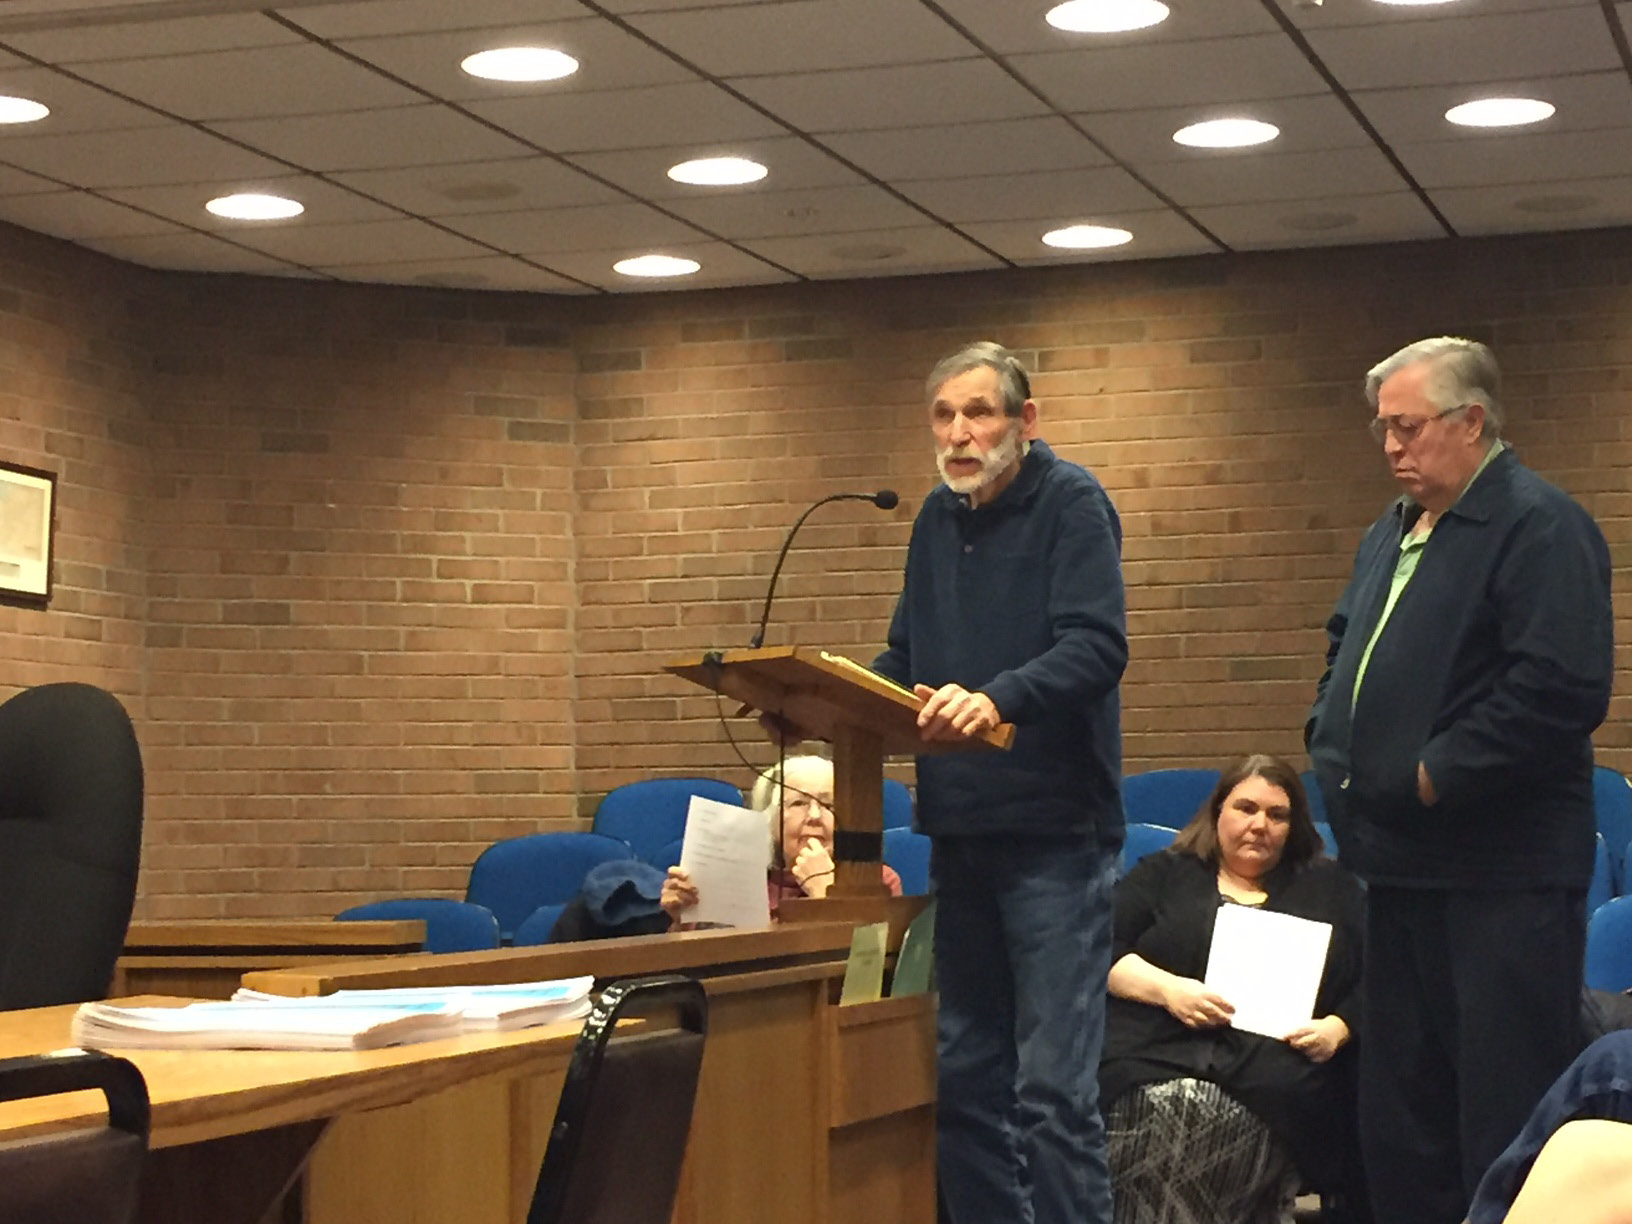 Resident Bob Doolittle speaks at a Town Council meeting about the Gold Star Memorial. |Ashley Kus, The Plainville Citizen